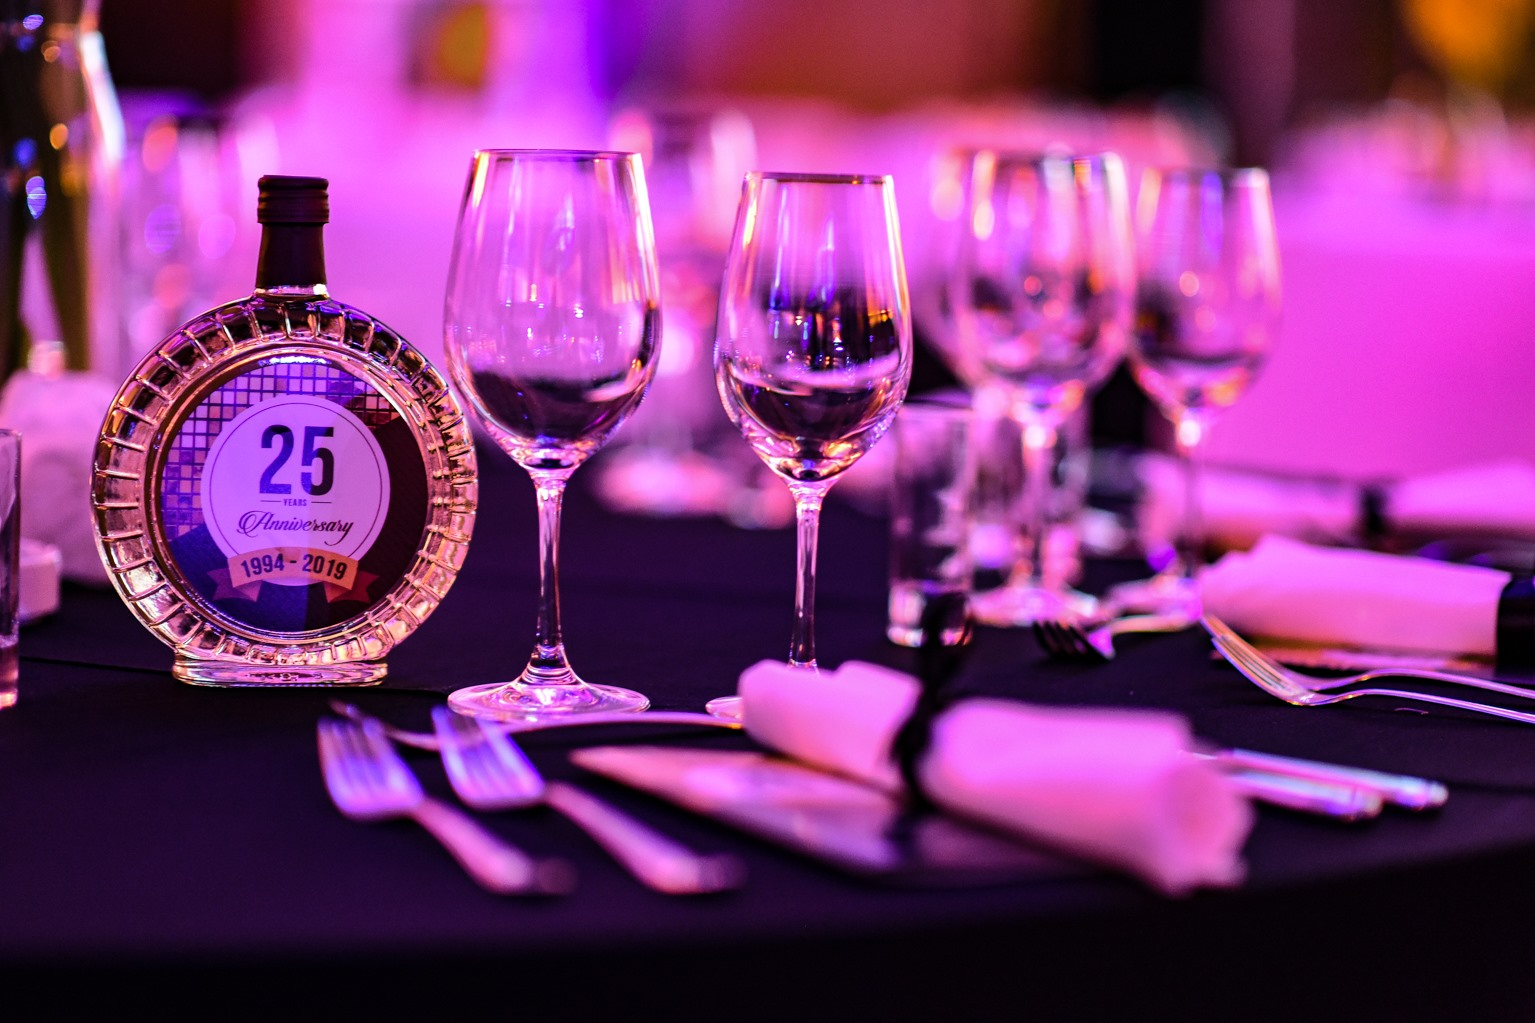 Celebrating 25 years of DIM Trade organized by Event Planner and Ana Aleksic - venue Crowne Plaza Hotel